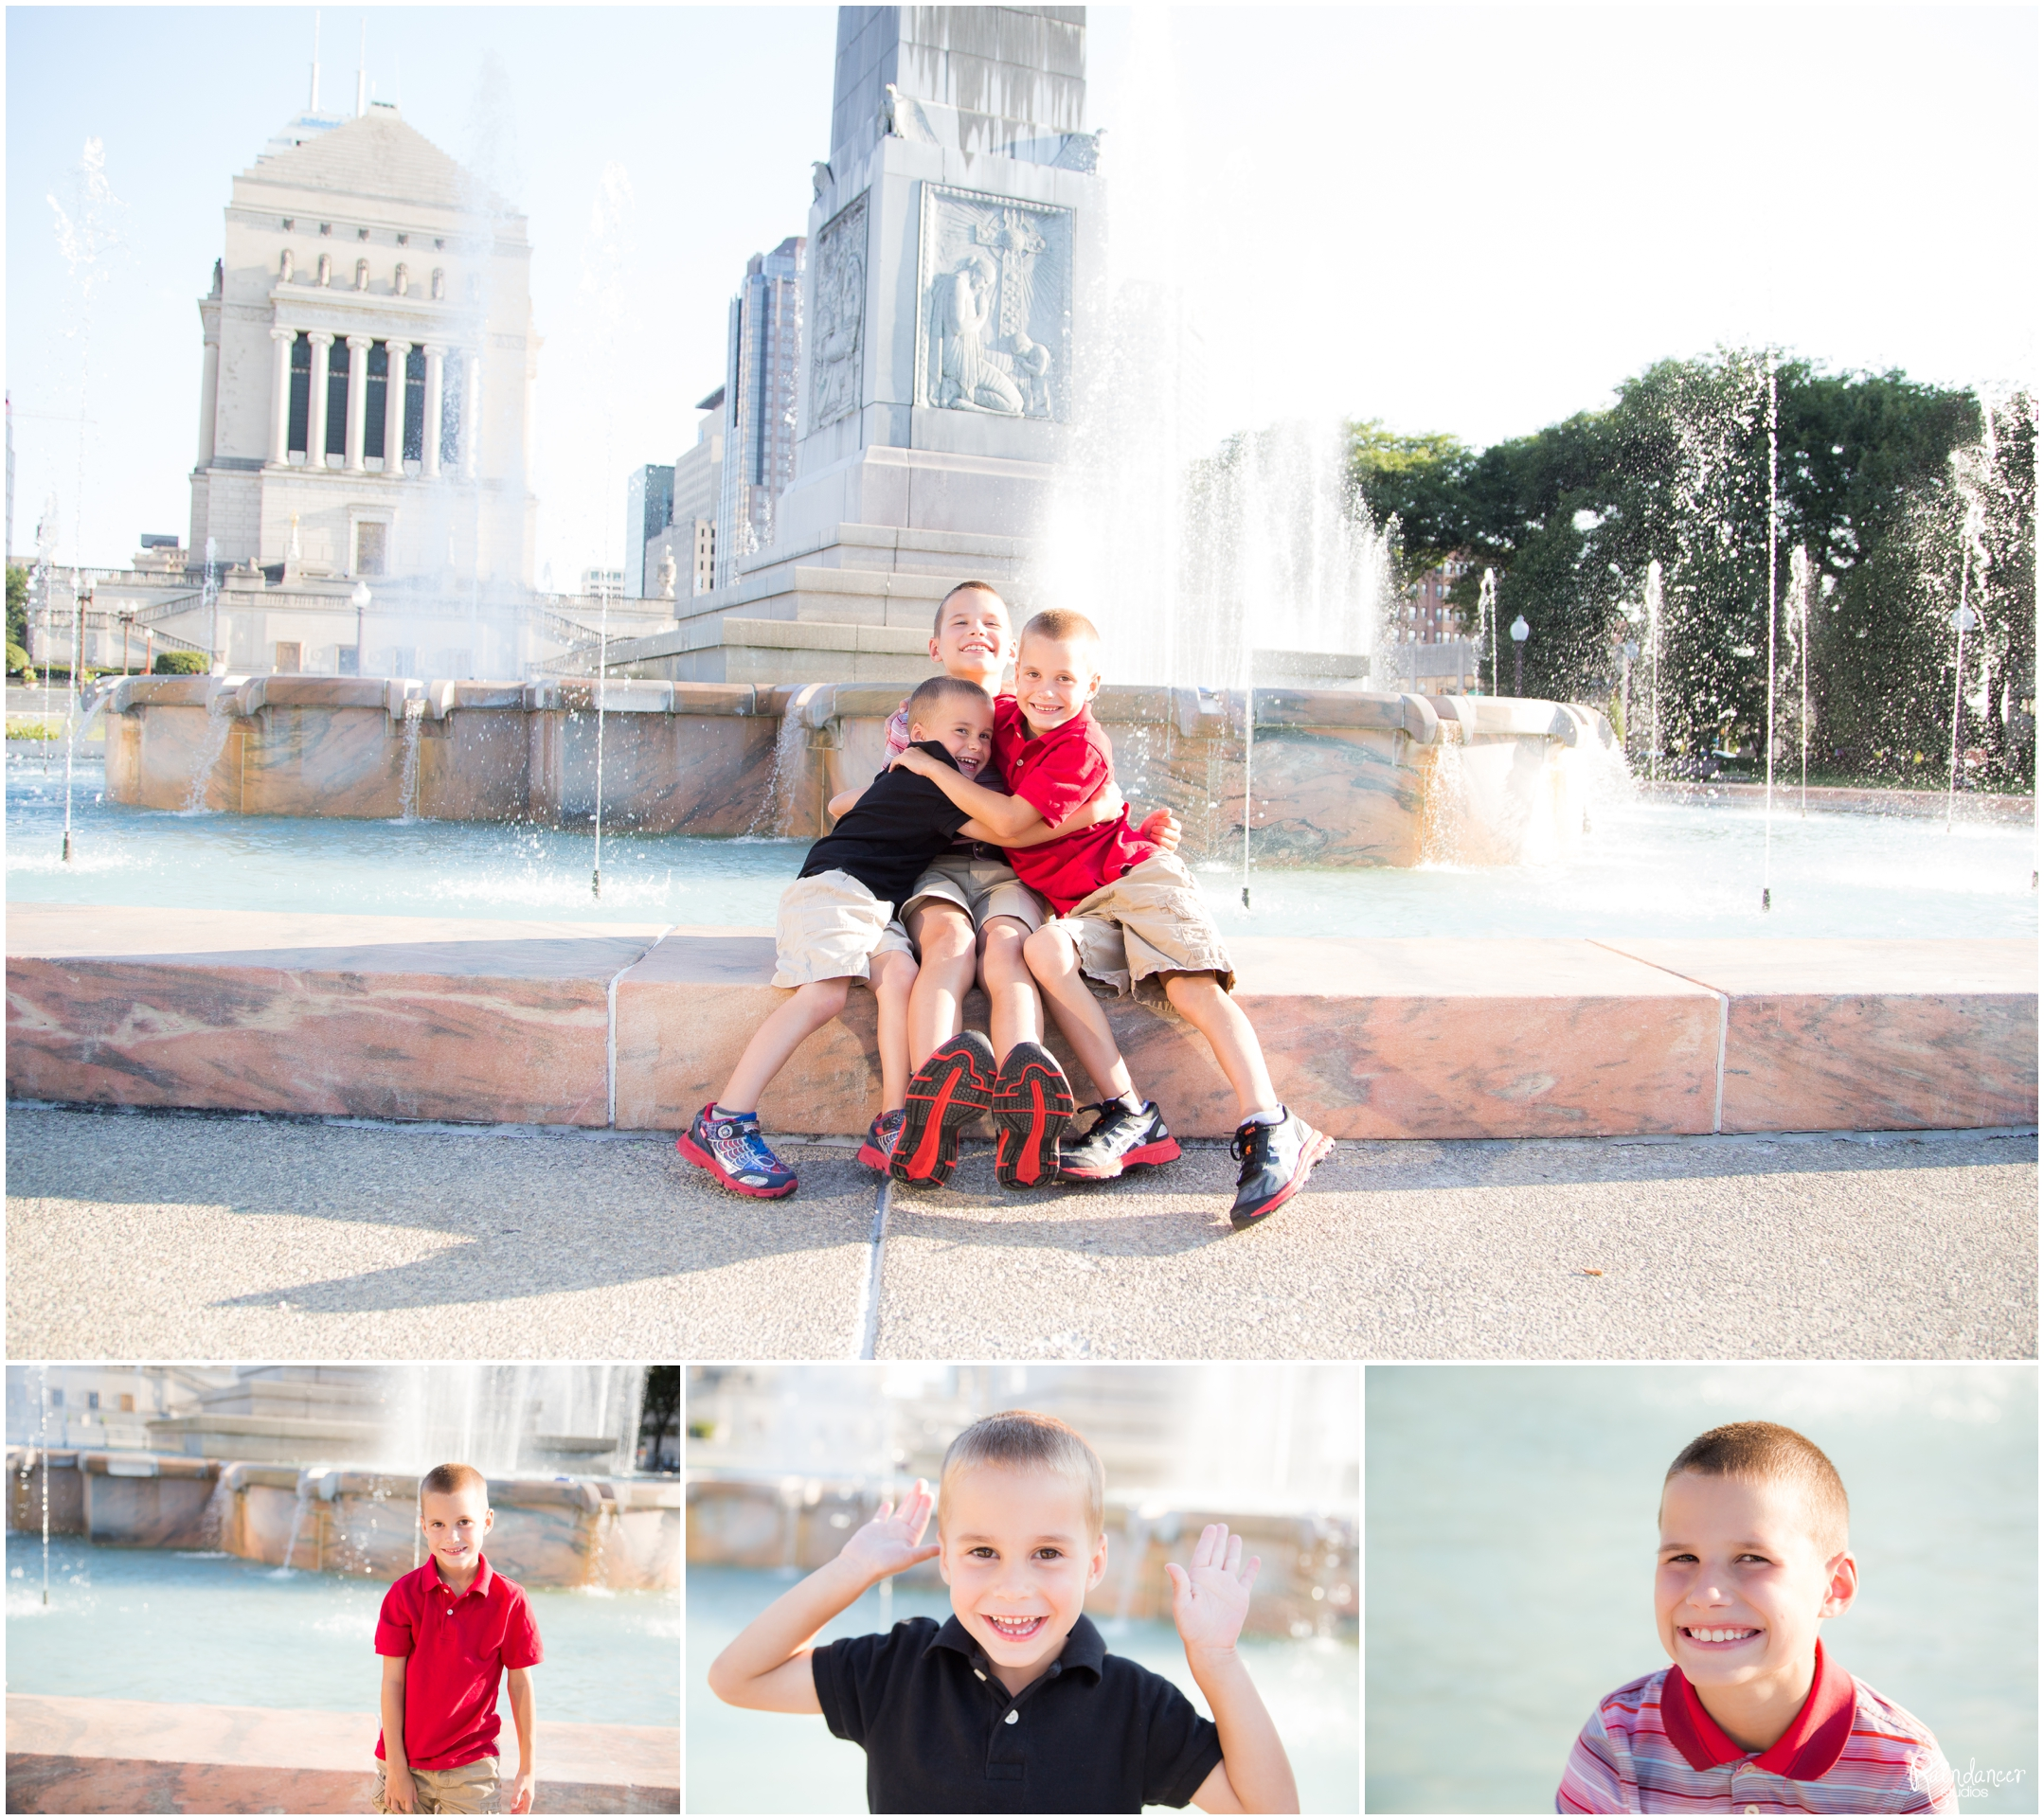 Indianapolis family photographer, Indianapolis family photography, Indy family photographer, Indy family photography, Indy children photographer, Indianapolis children photographer, Indianapolis lifestyle photographer, Indy lifestyle photographer, Indianapolis lifestyle photography, Indy lifestyle photography